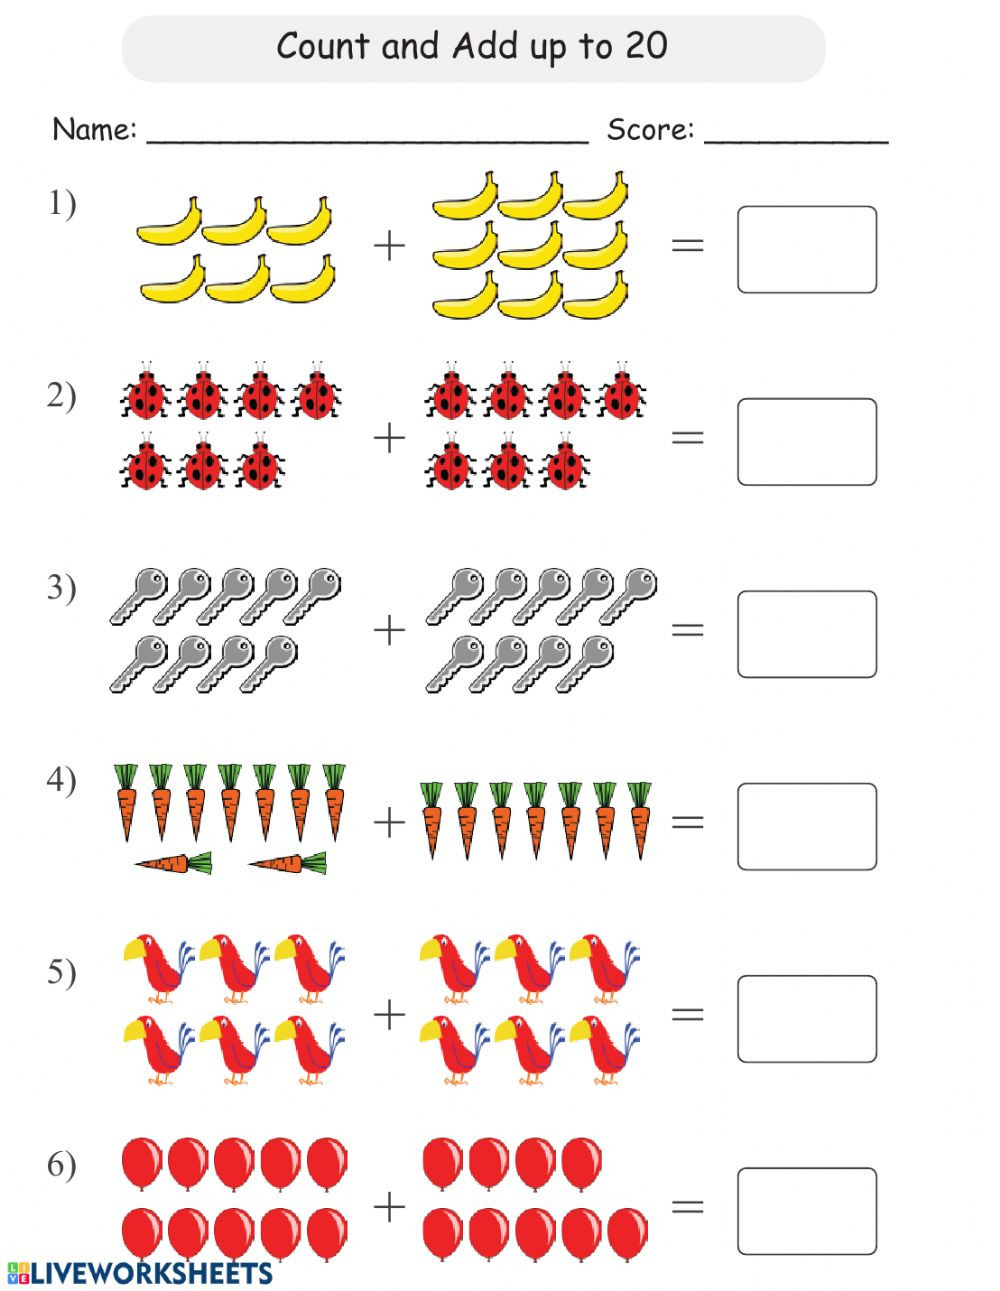 Counting to 20 Worksheet Count and Add Up to 20 Interactive Worksheet